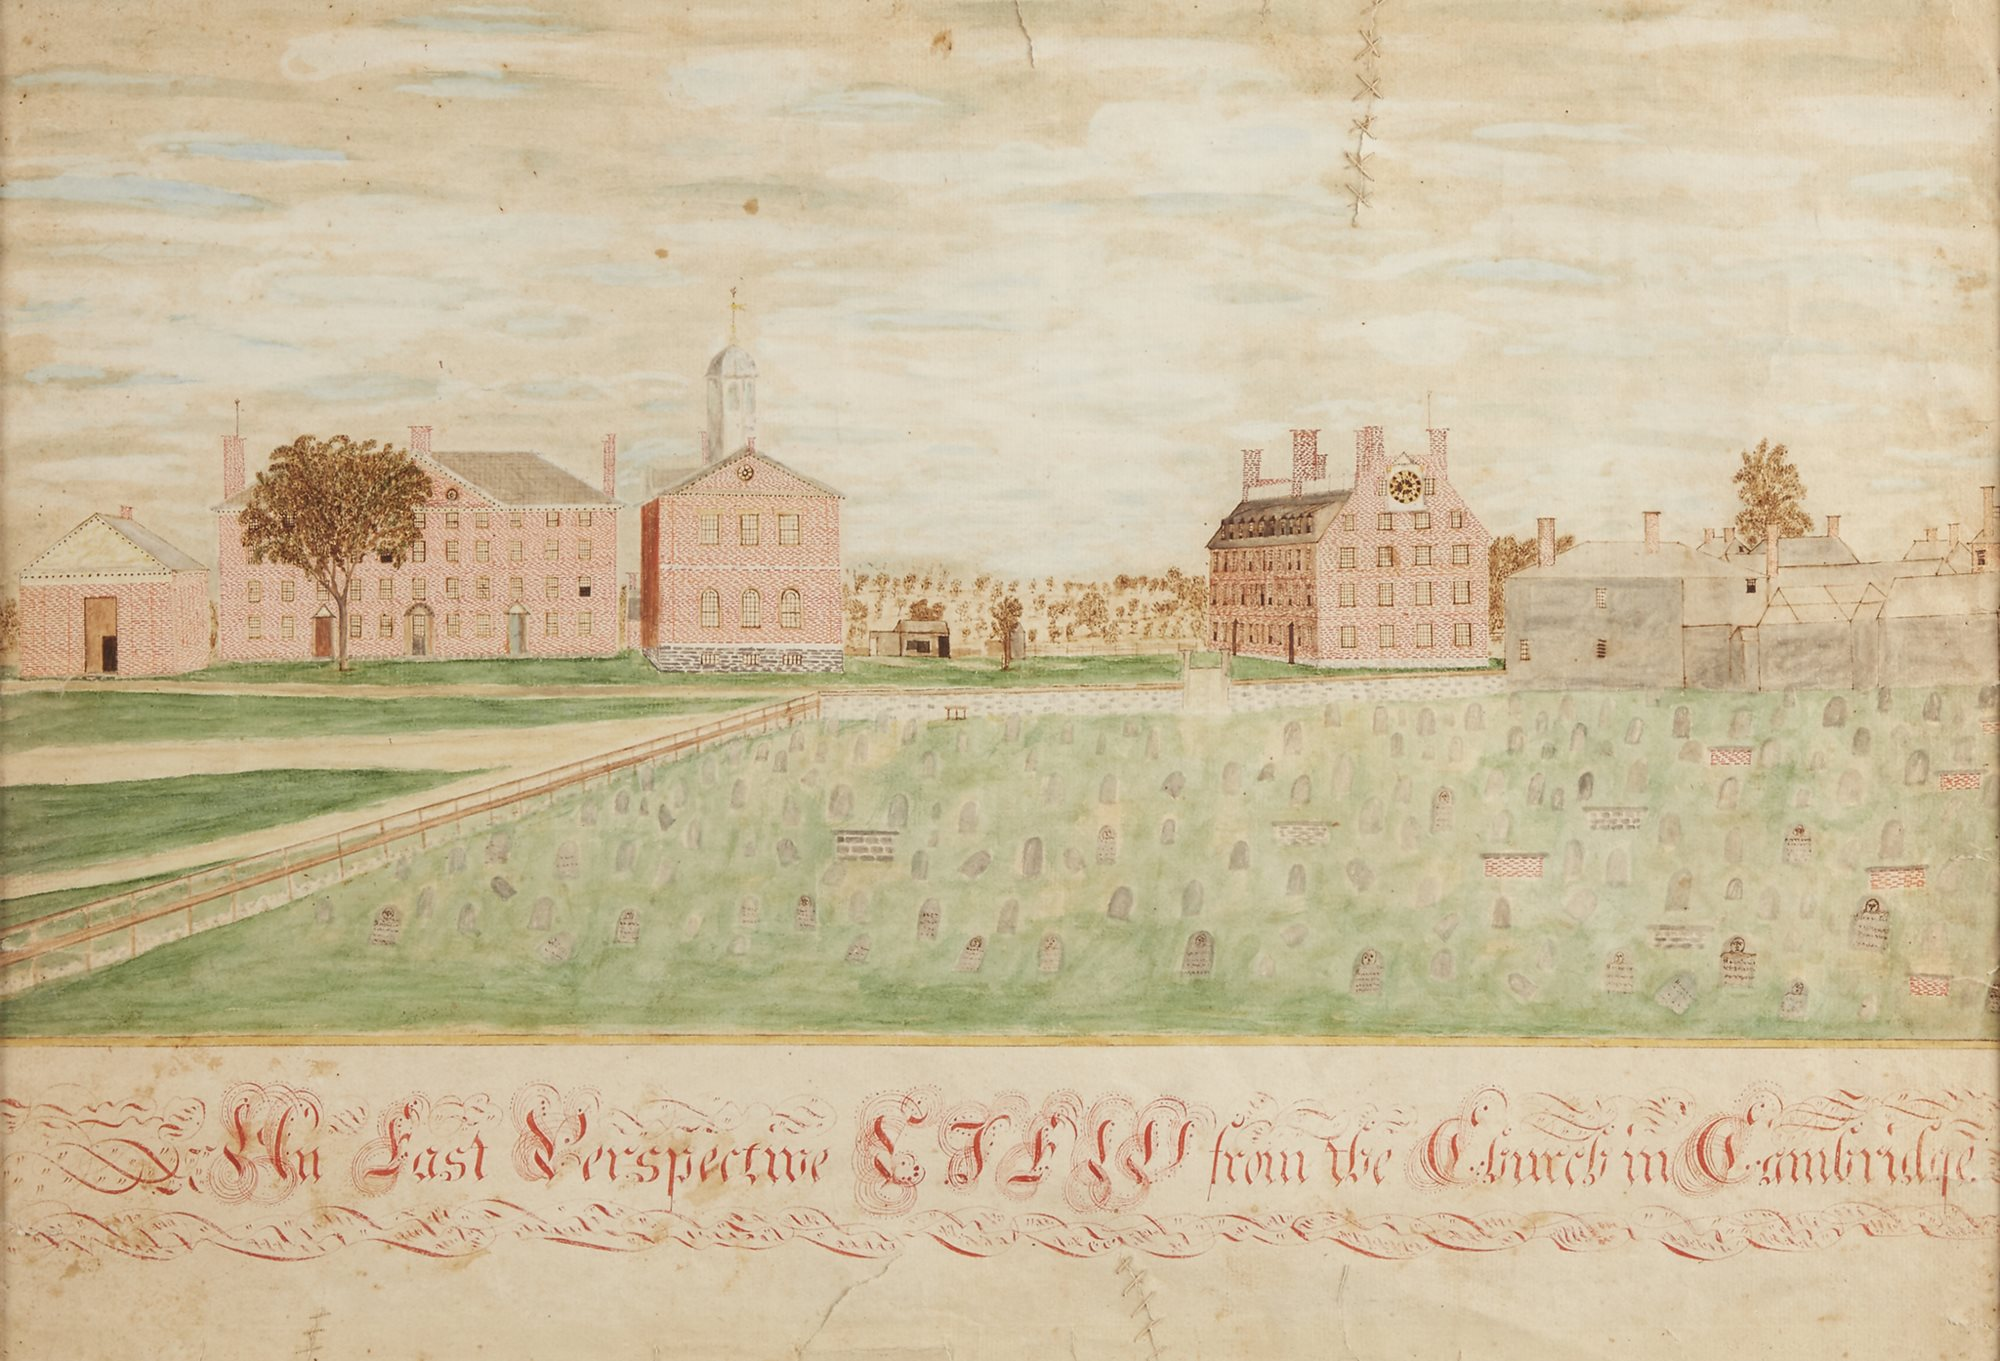 Lot 34: The earliest known hand-drawn view of Harvard College,